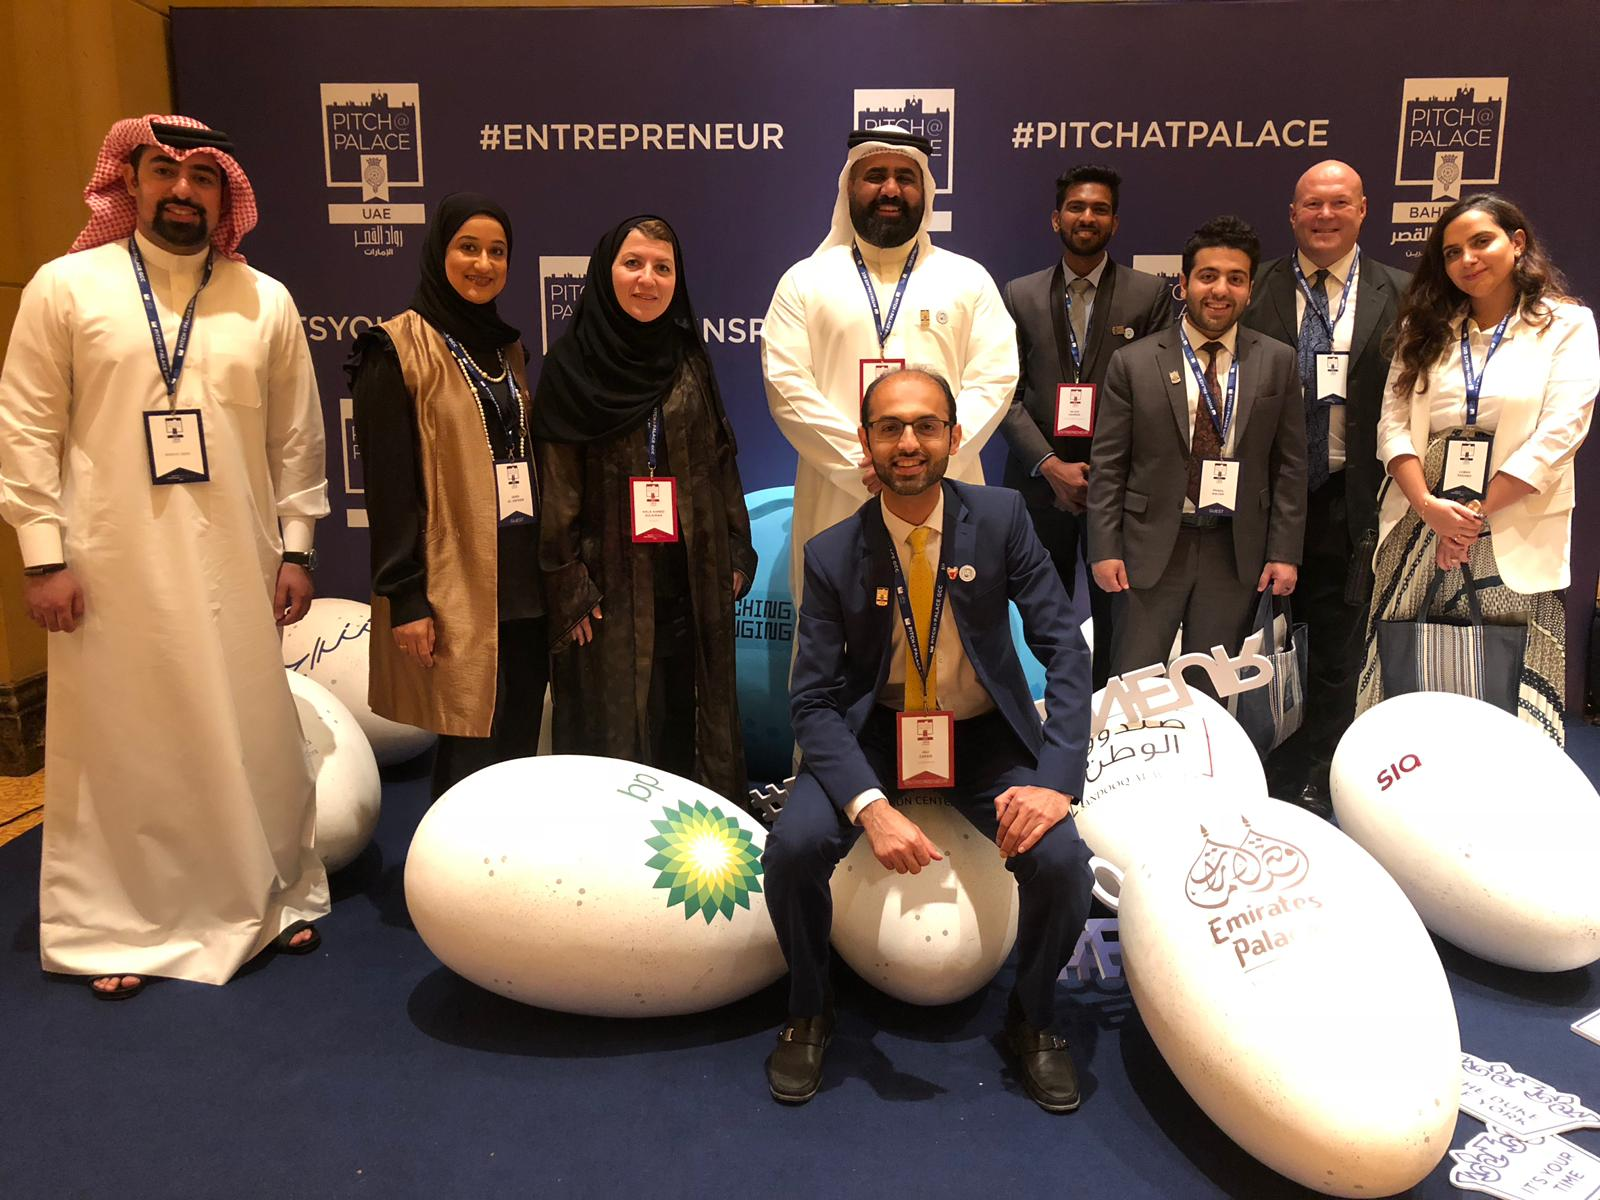 Bahraini startups Alrawi and ONEGCC secure the top positions in the Pitch@Palace 1.0 competition